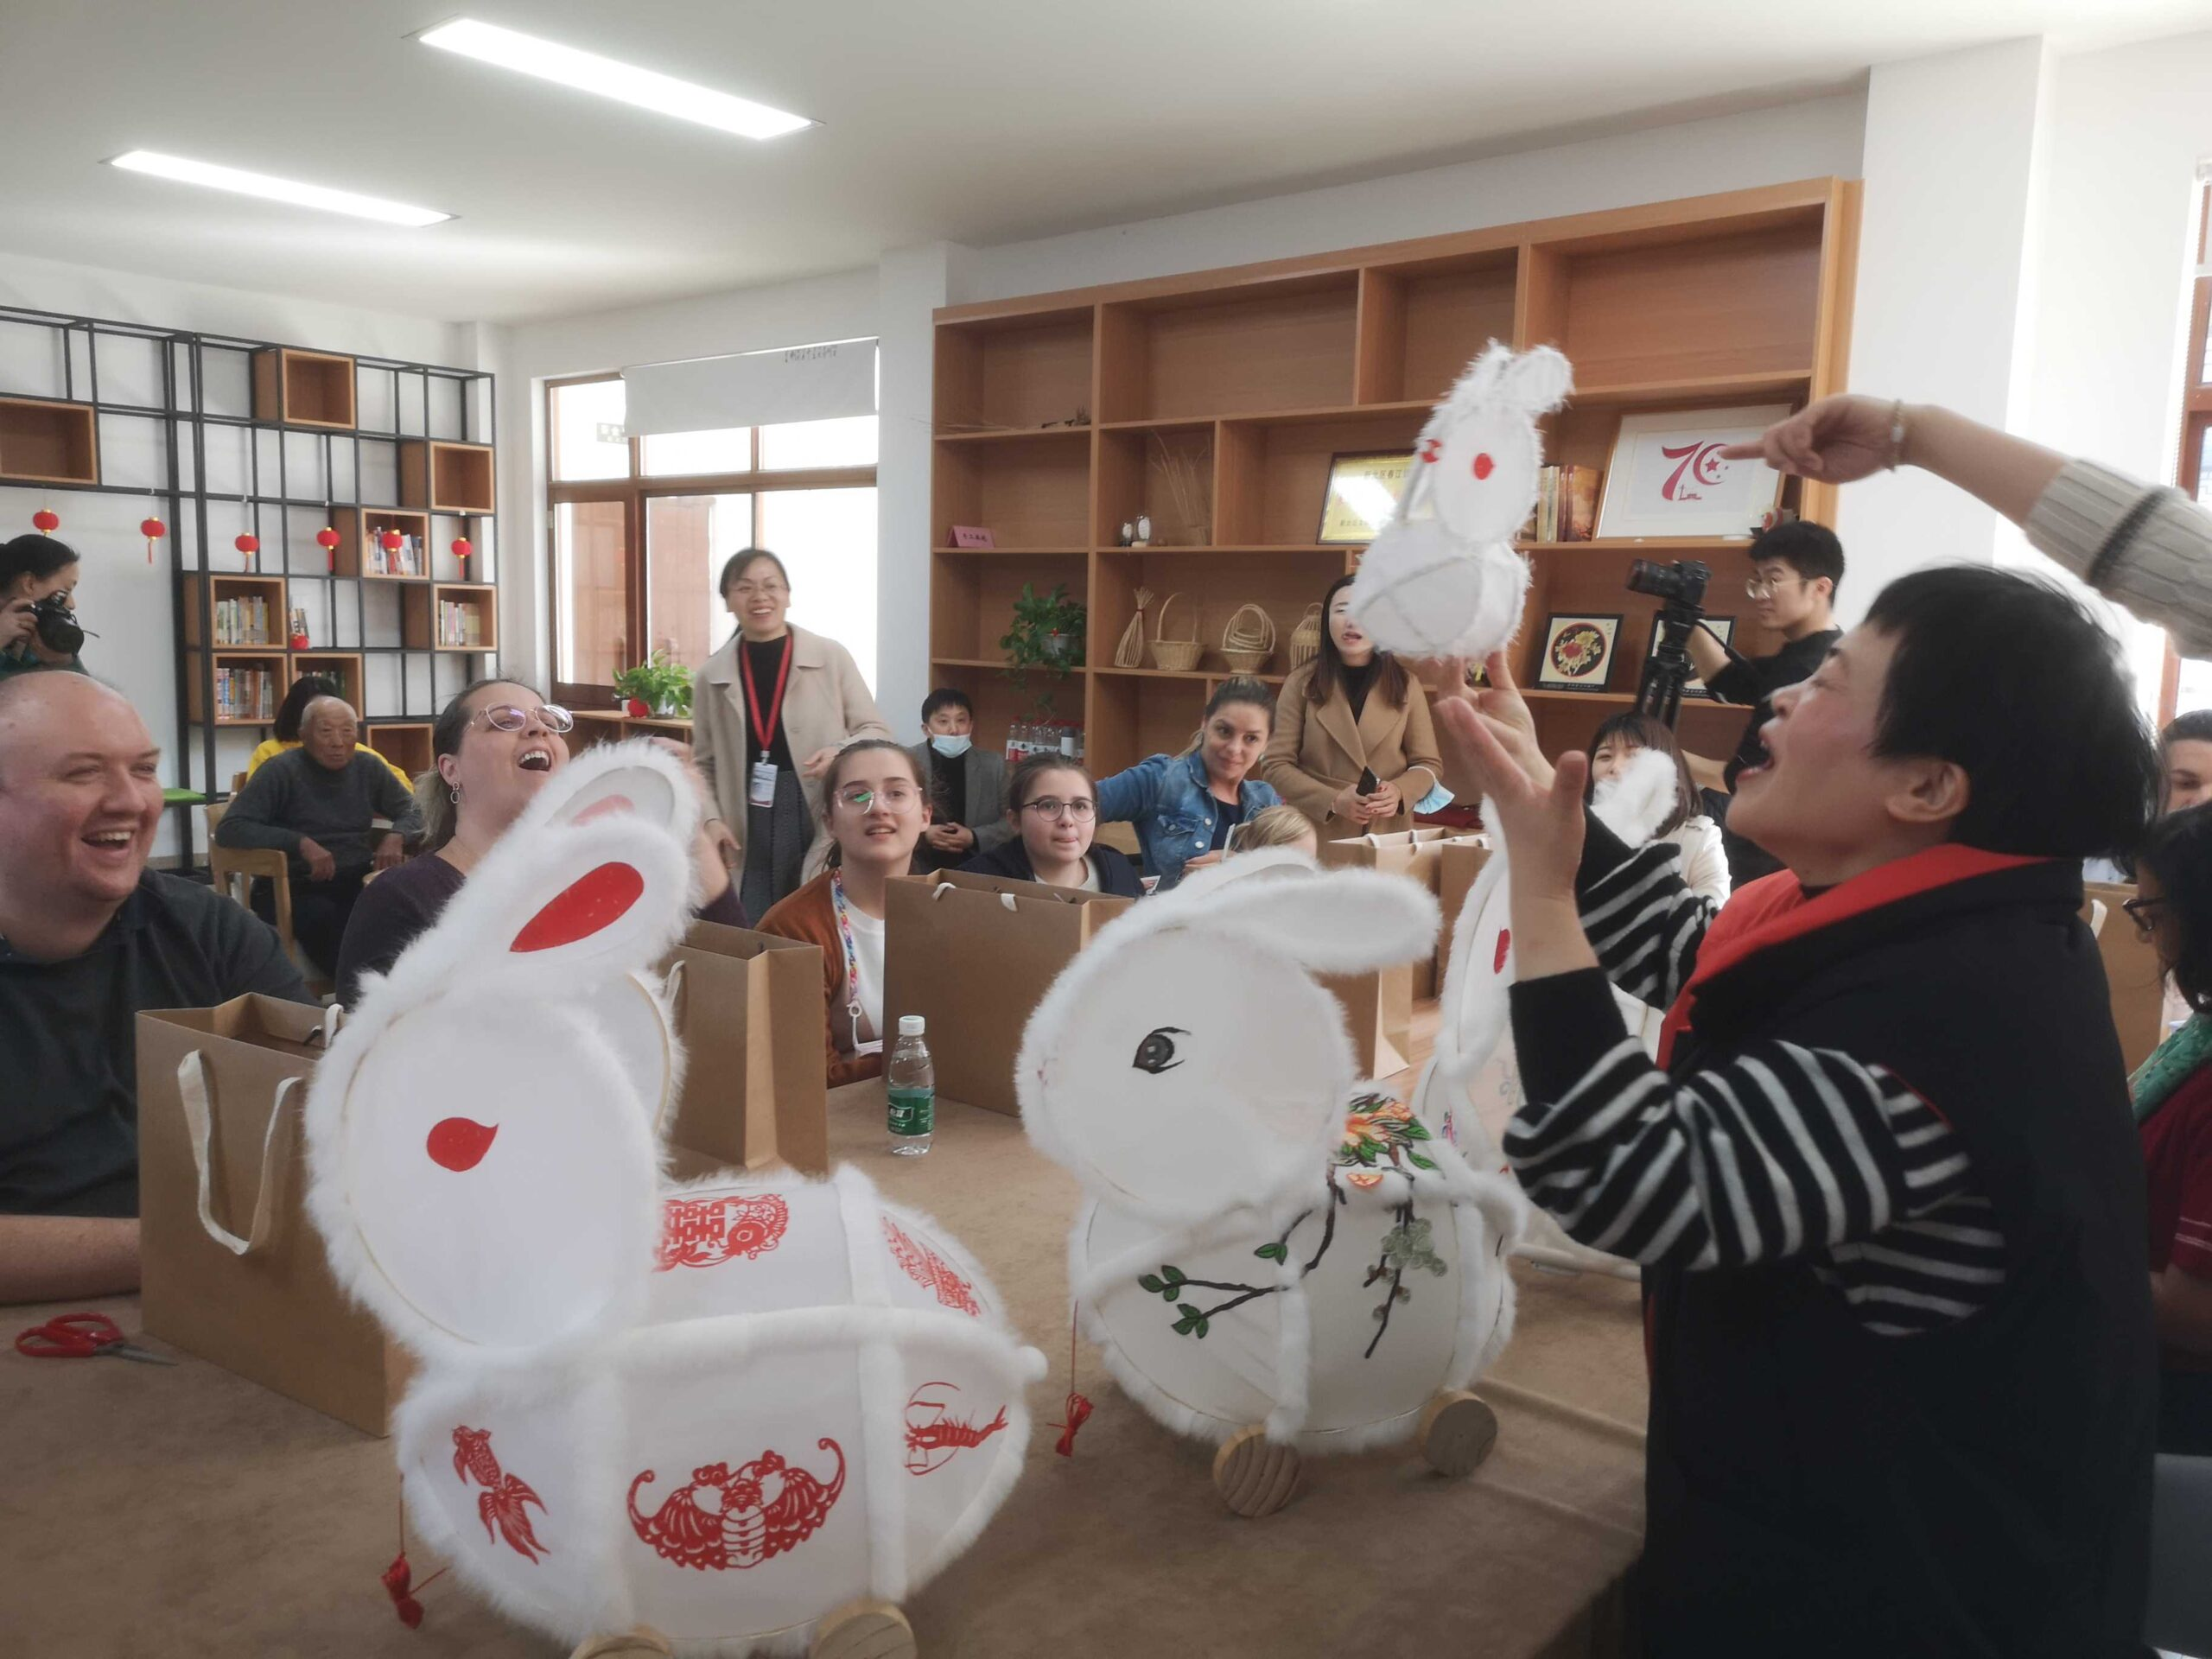 Theresa Boersma helped organize this February 2021 class that taught foreigners how to make rabbit lanterns. [Photo courtesy of Theresa Boersma]